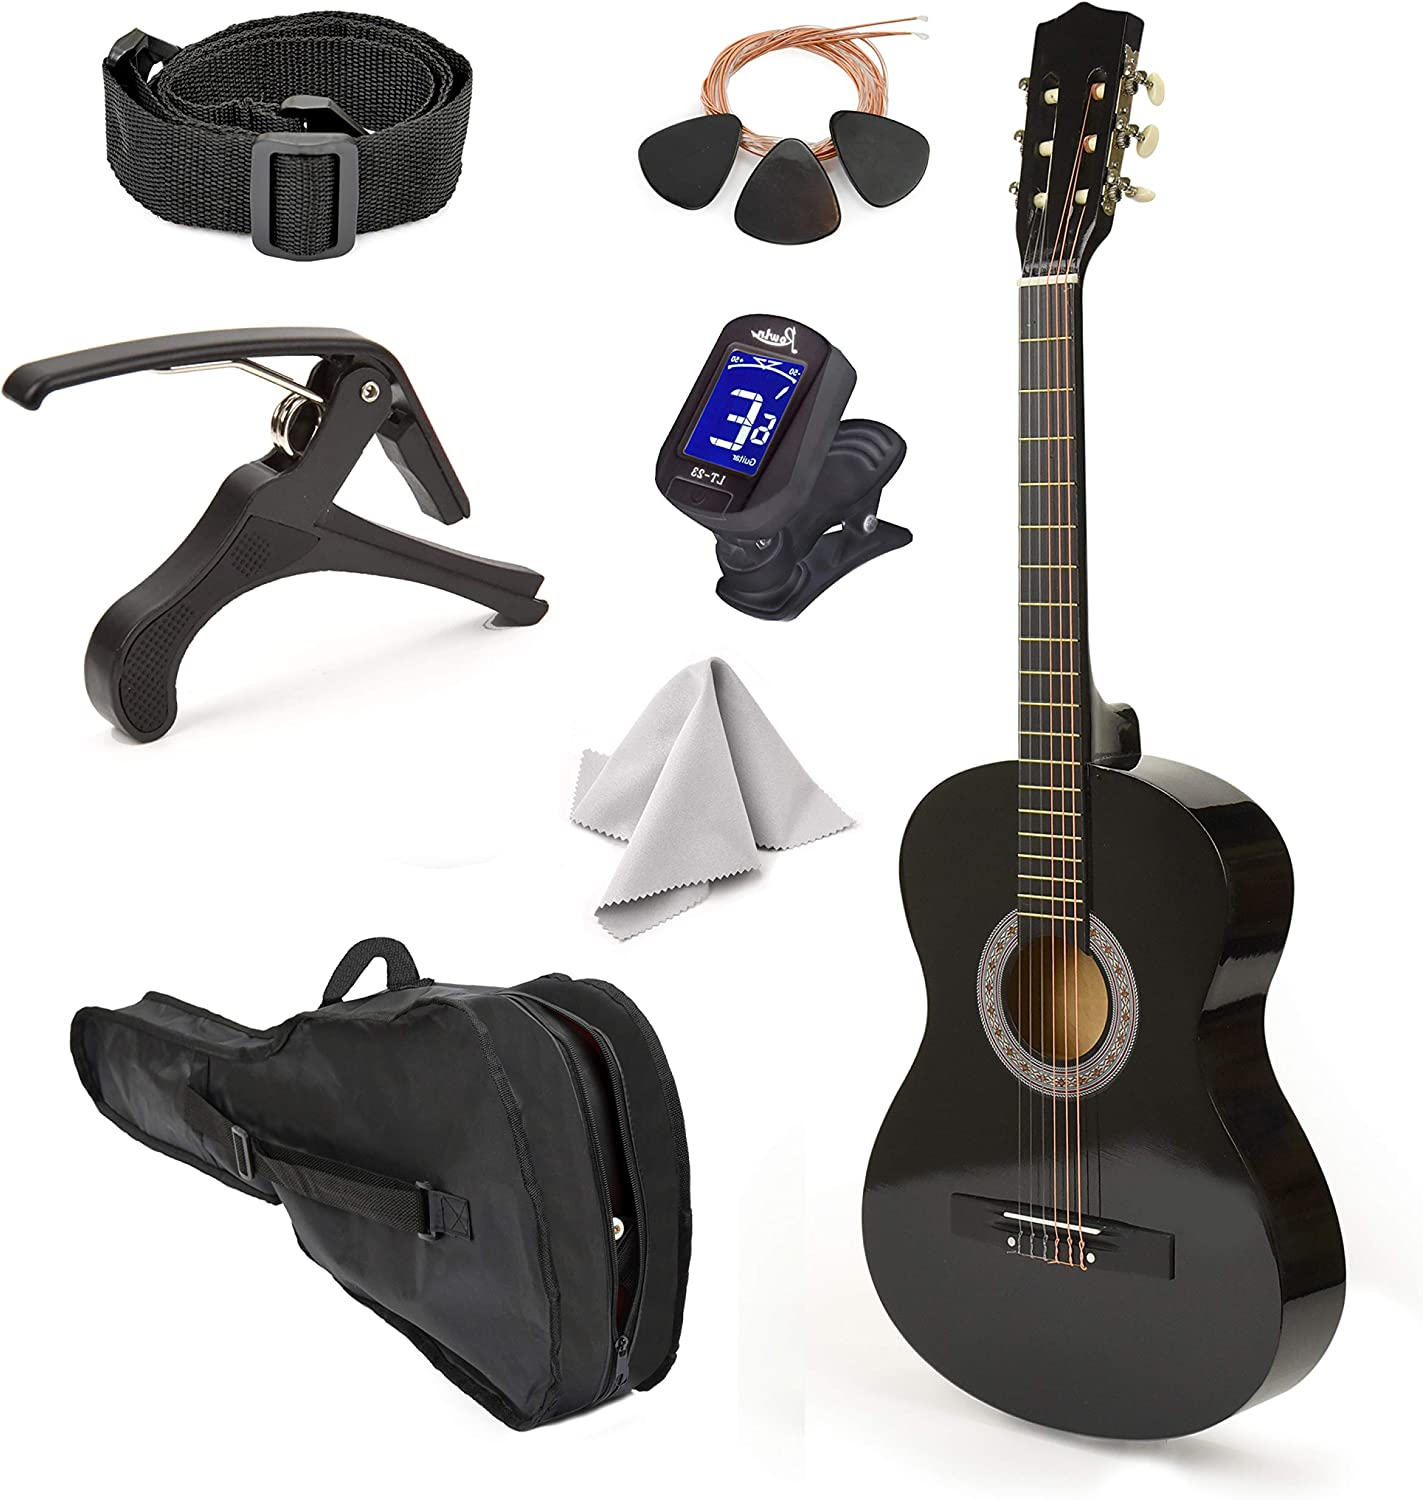 Left Handed In Cash special price a popularity Wood Guitar with Case for and Boys Girls Accessories